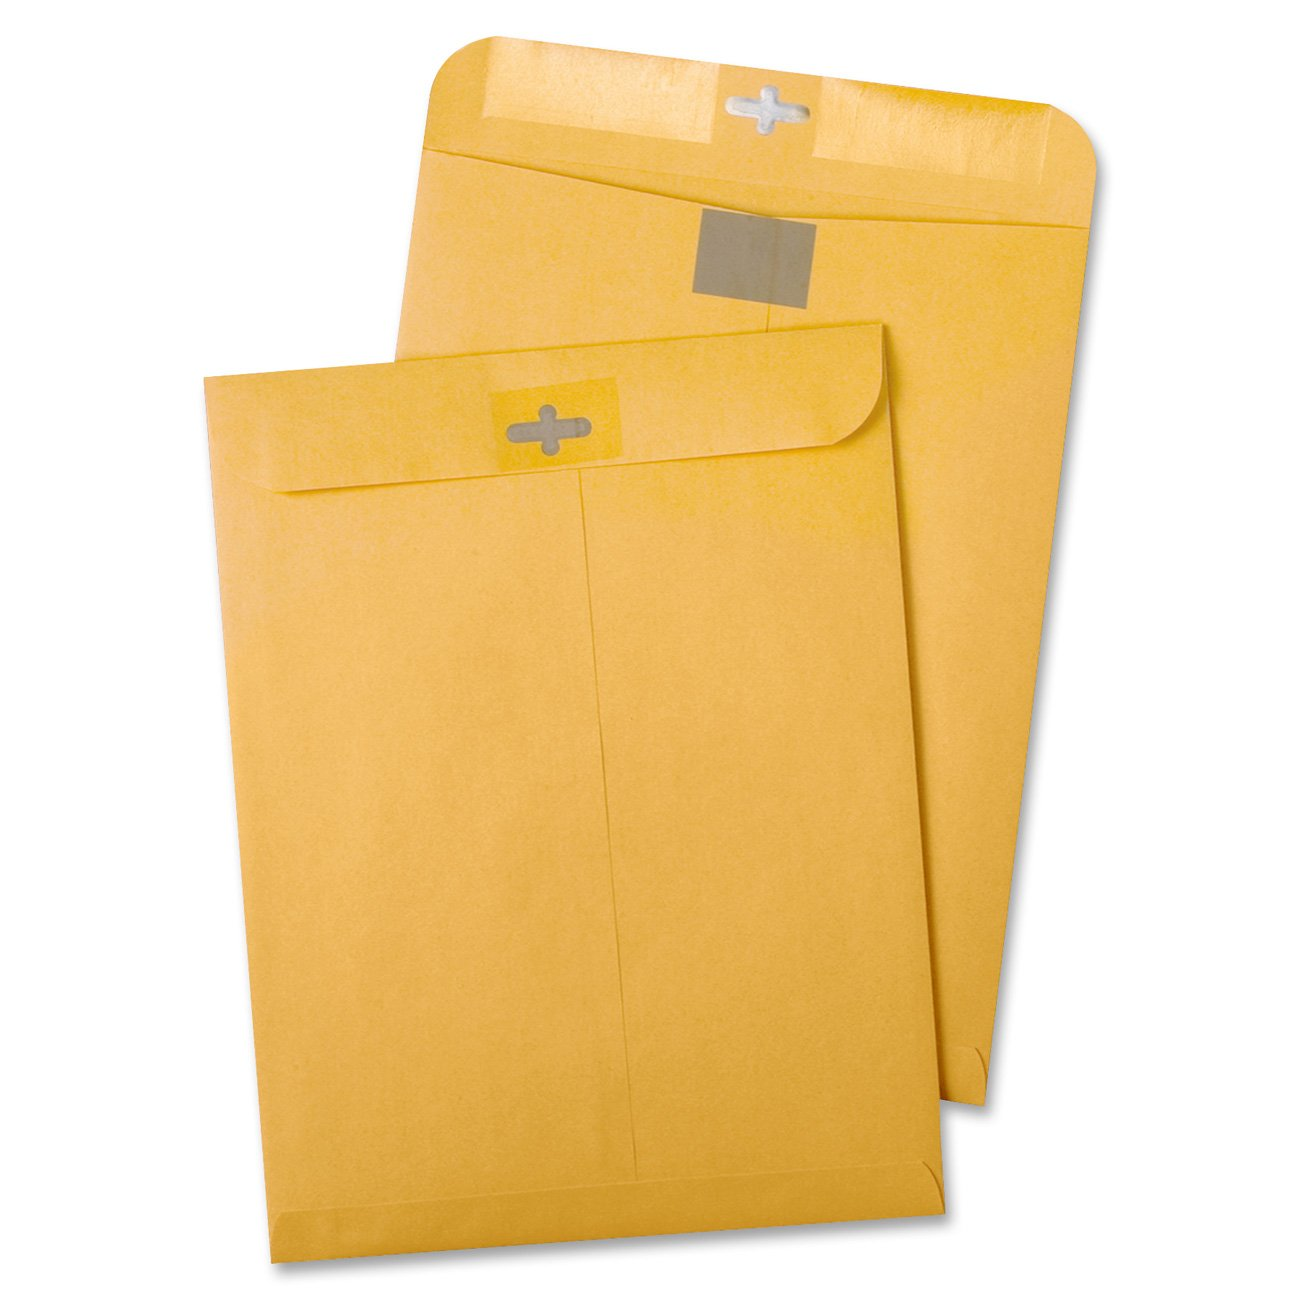 Quality Park Postage Saving Clear-Clasp Envelopes, 6 inches x 9 inches, Kraft, 100 Count (43468)